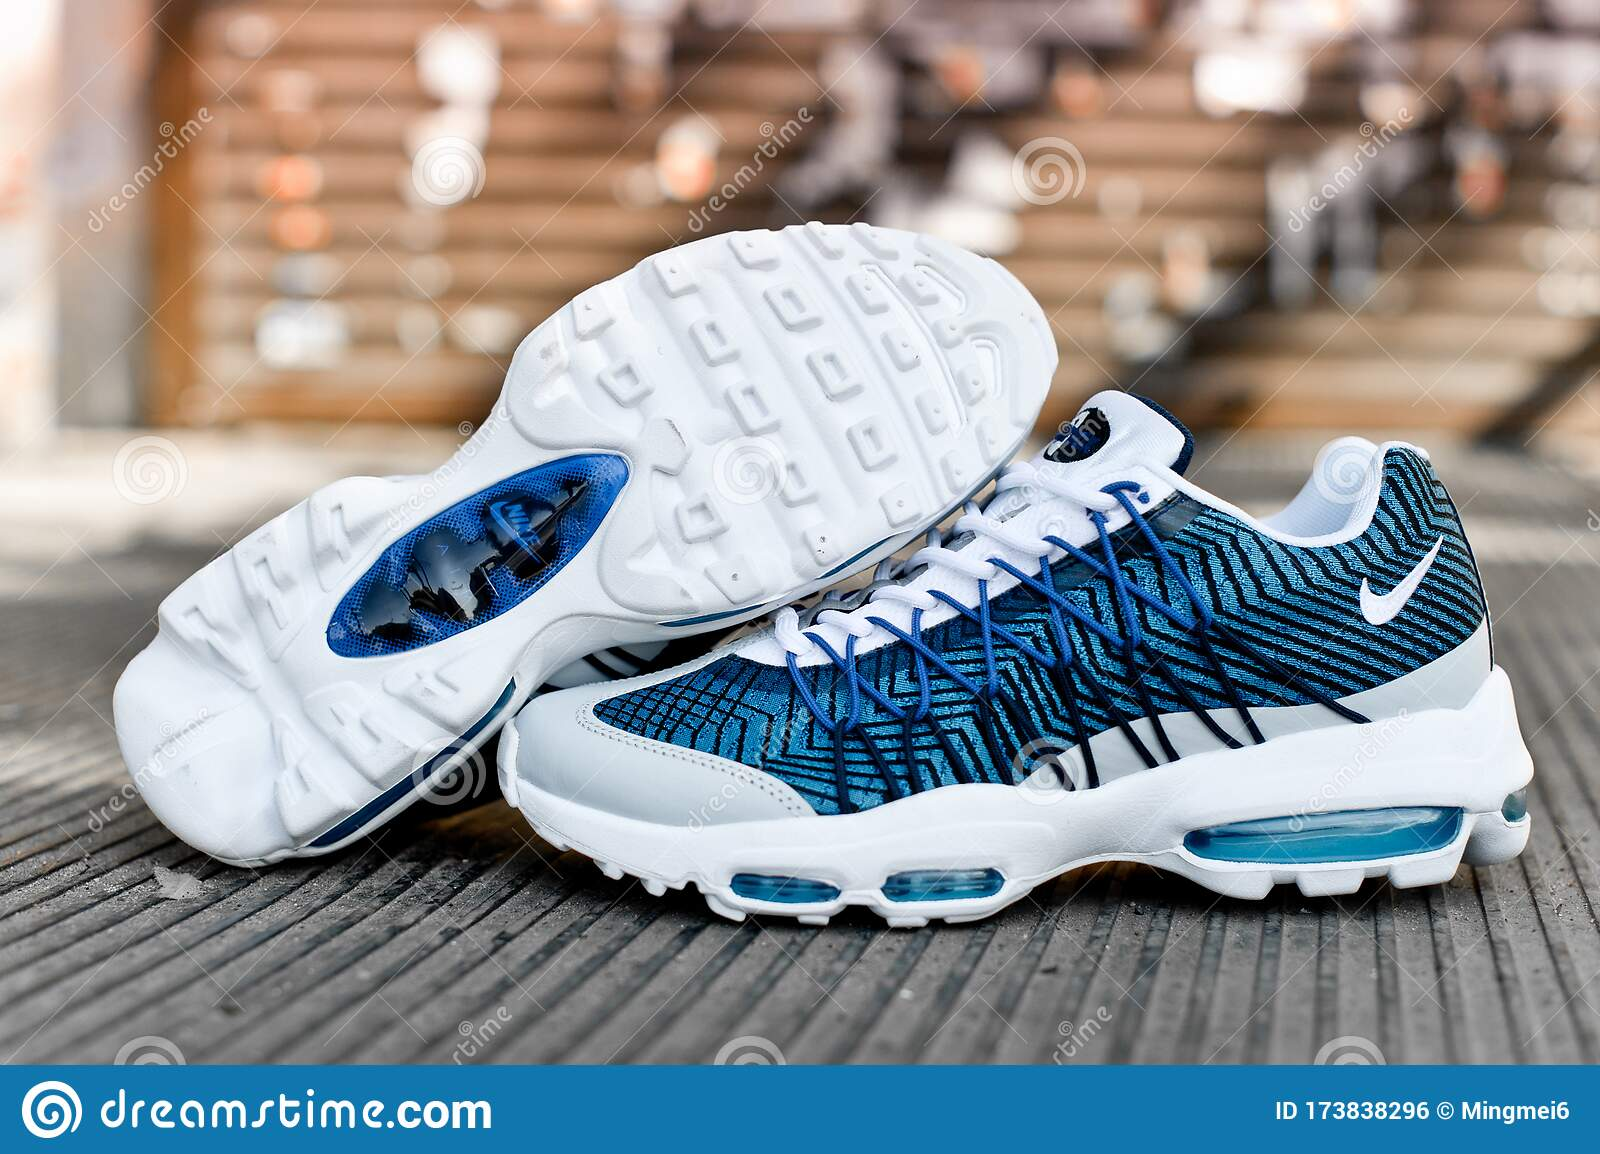 Nike Air Max 95 Ultra JCRD Running Shoes, Sneakers On Abstract ...